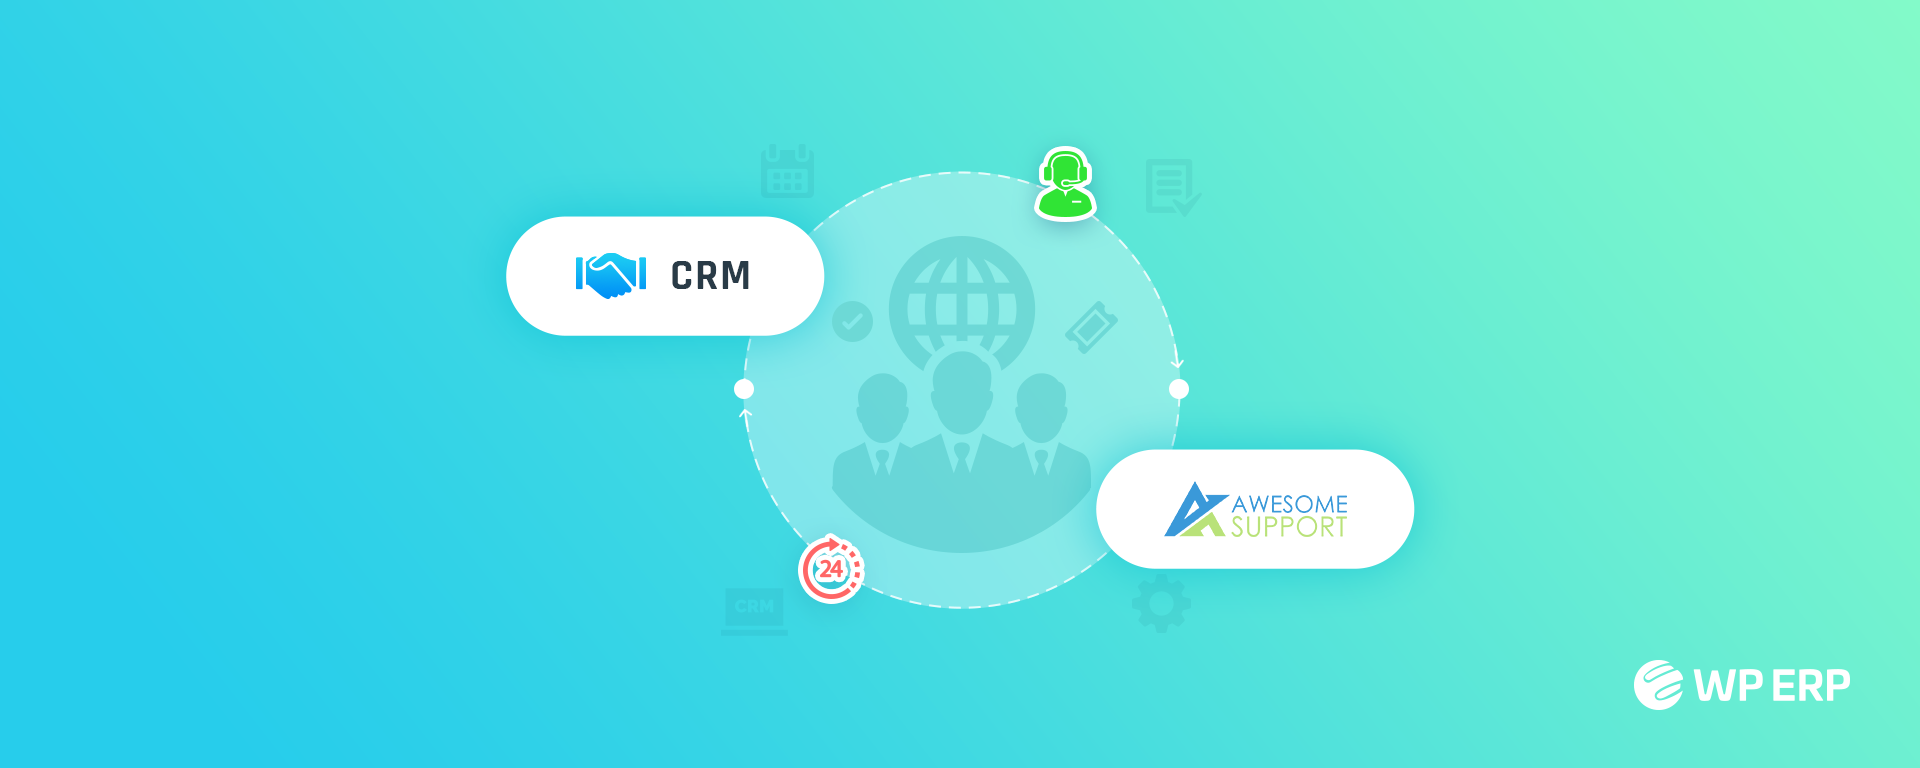 Awesome Support CRM